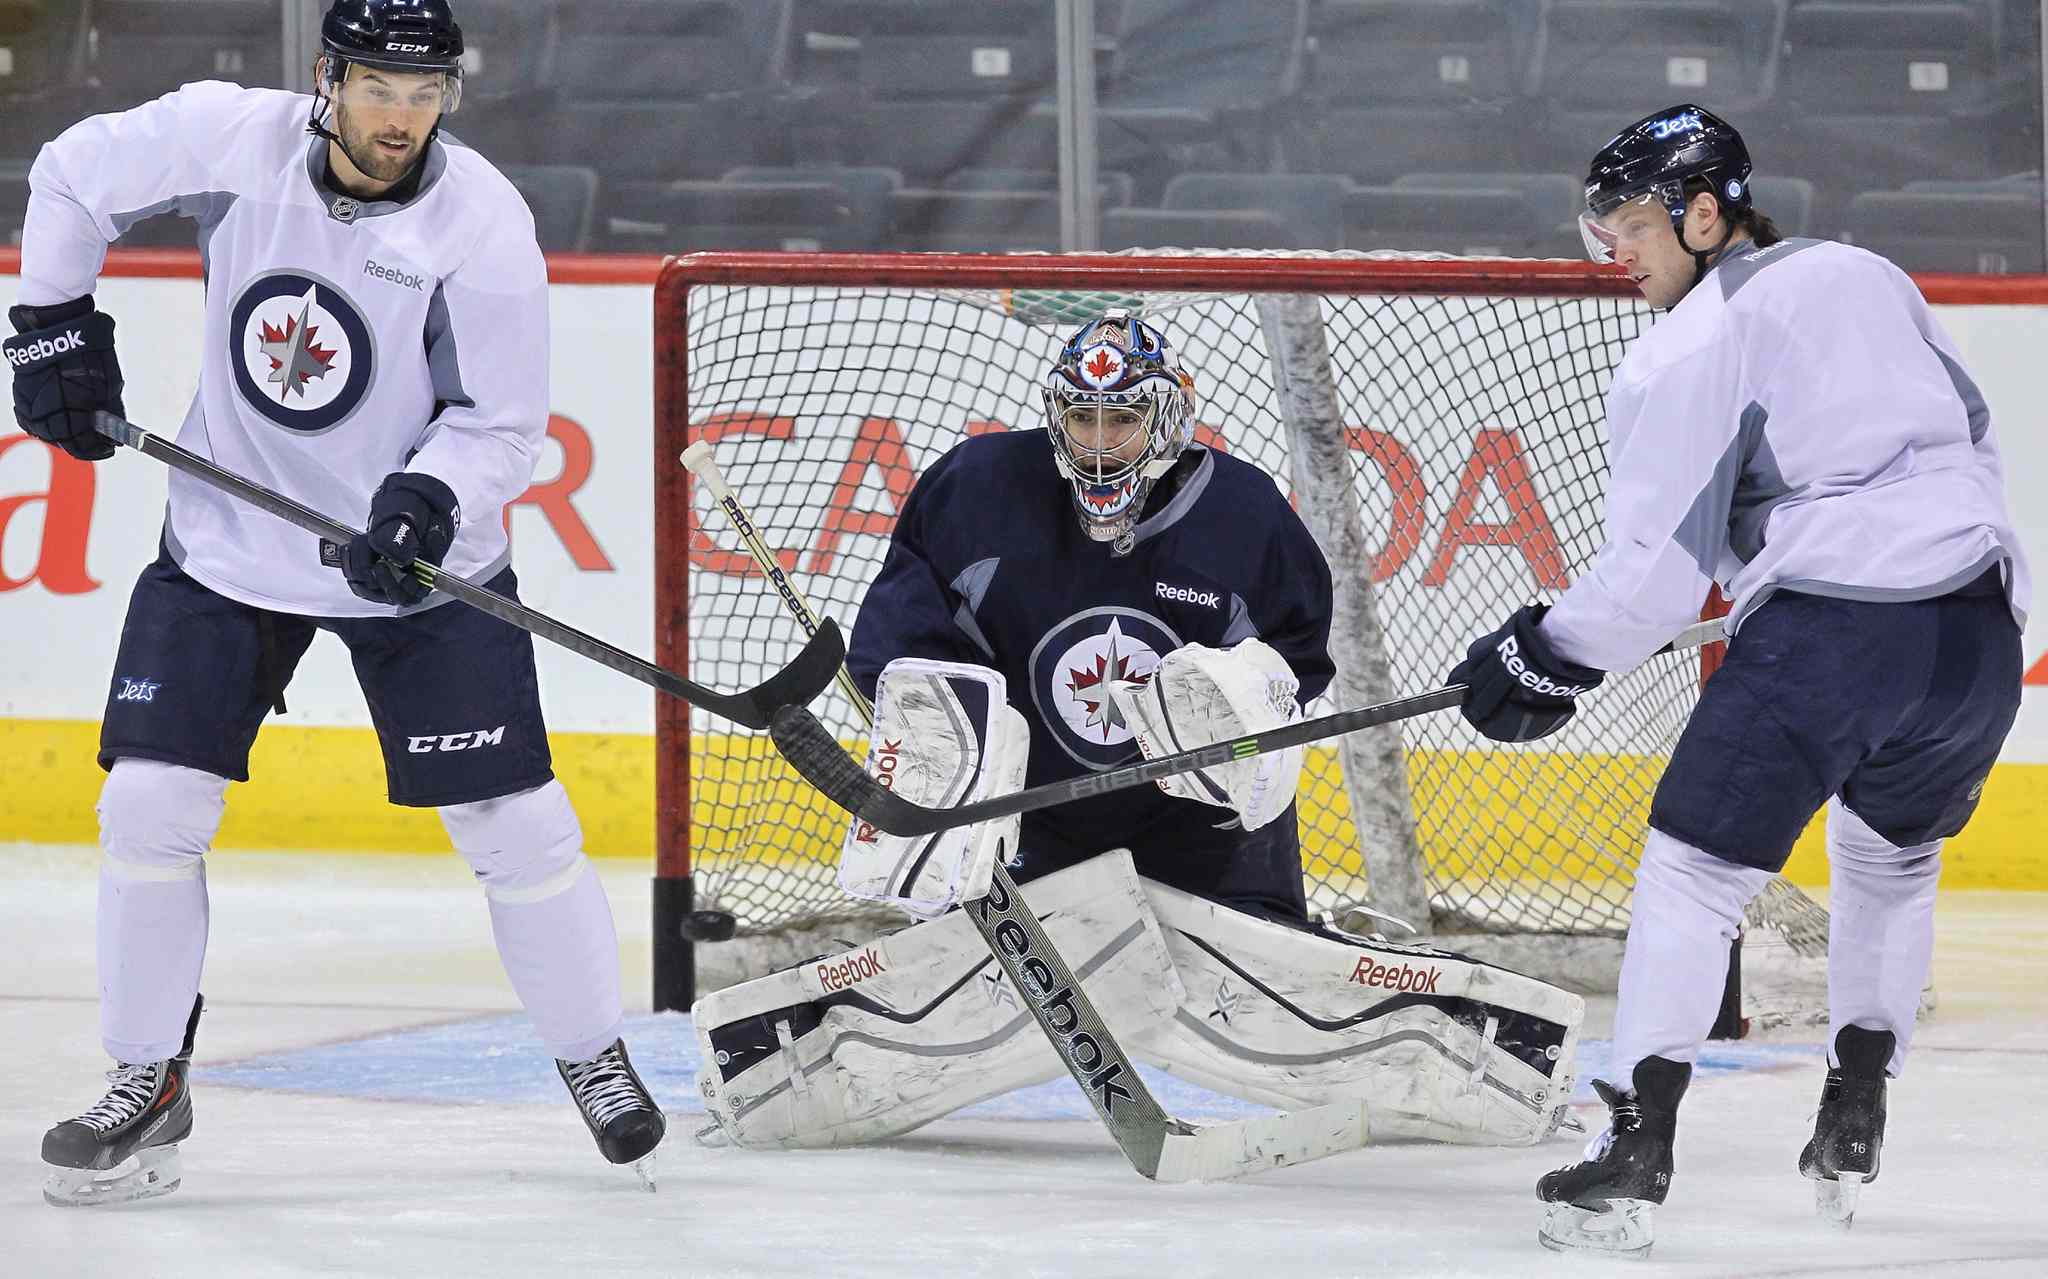 Winnipeg Jets' Eric Tangradi (27) and John Albert (70) try to deflect an incoming puck in front of goaltender Al Montoya (35) during a very short practice Sunday morning at MTS Centre.